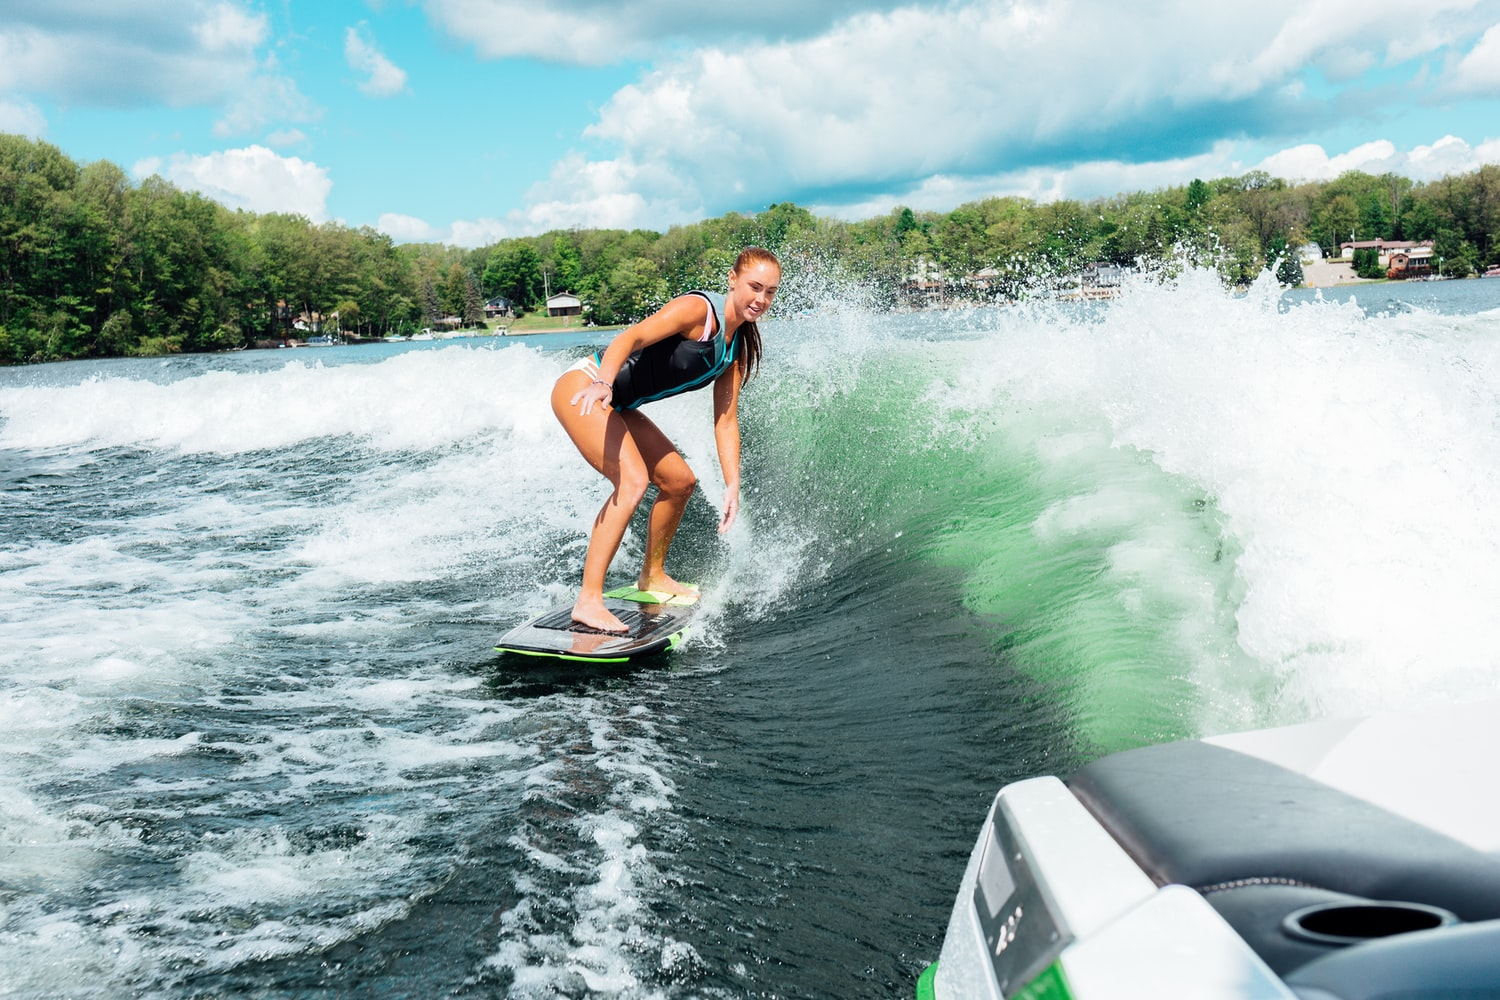 Benefits of water sports